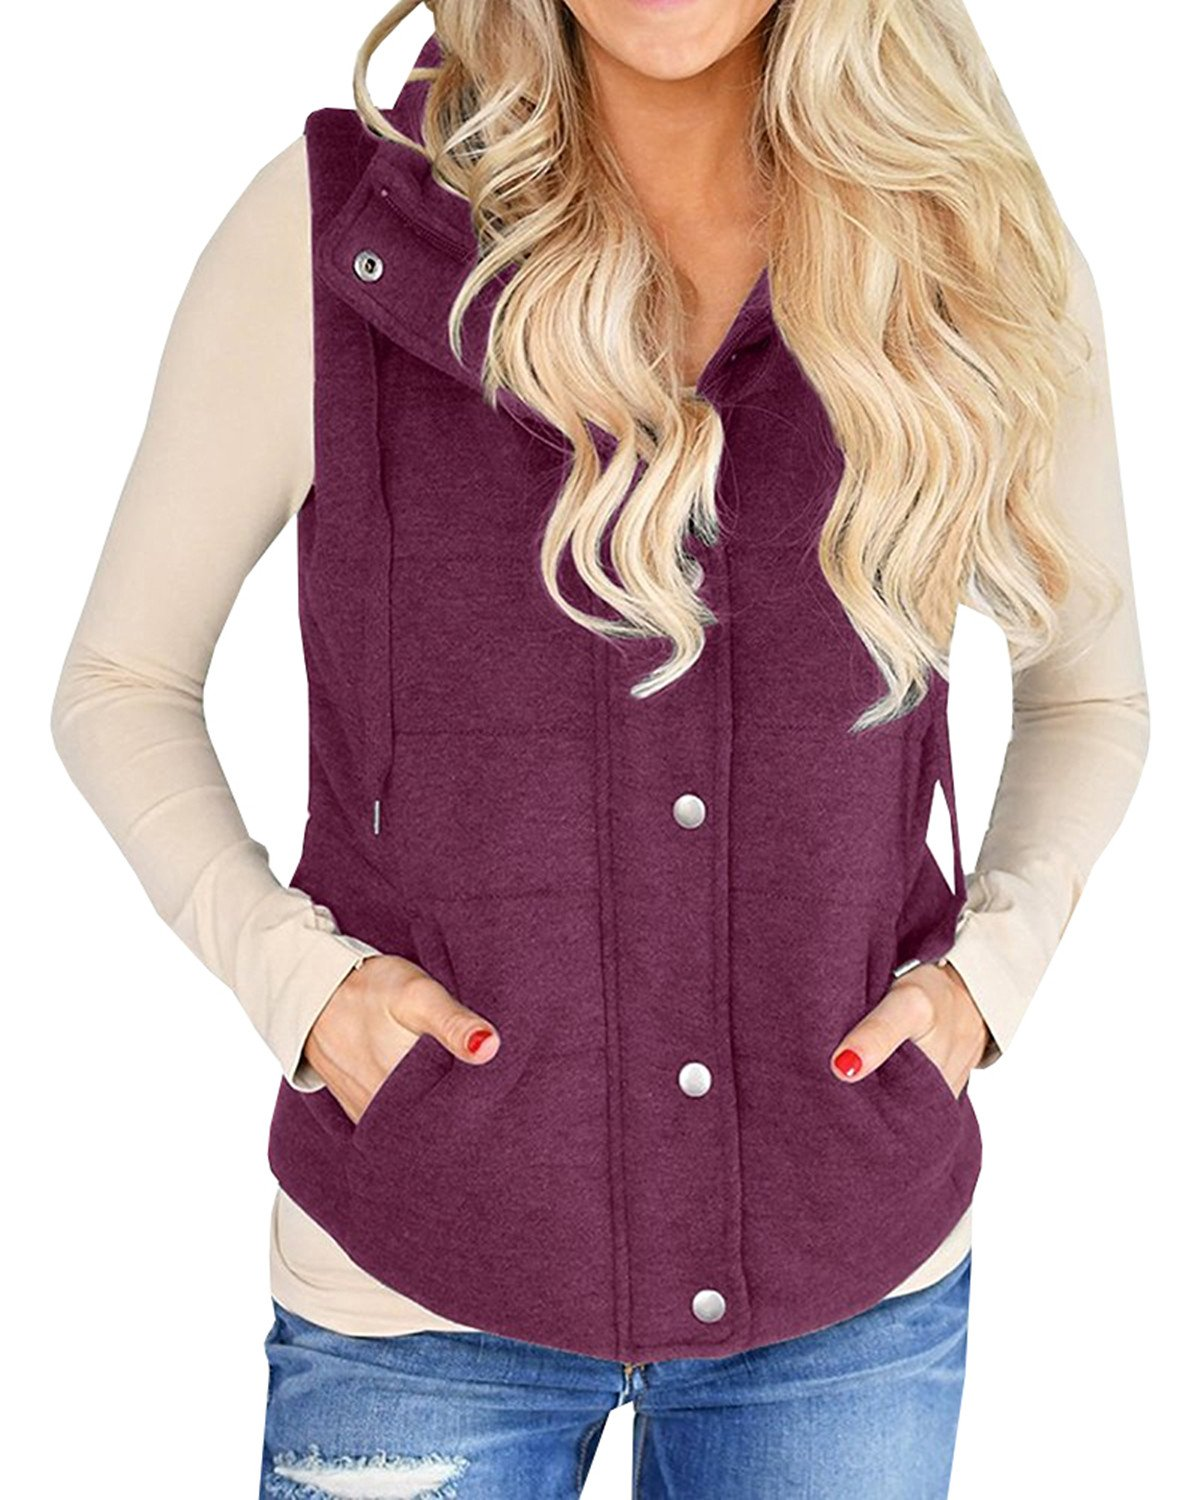 Ofenbuy Womens Vest Lightweight Quilted Drawstring Jacket Casual Button Closure Outerwear by (Small, Wine Red)